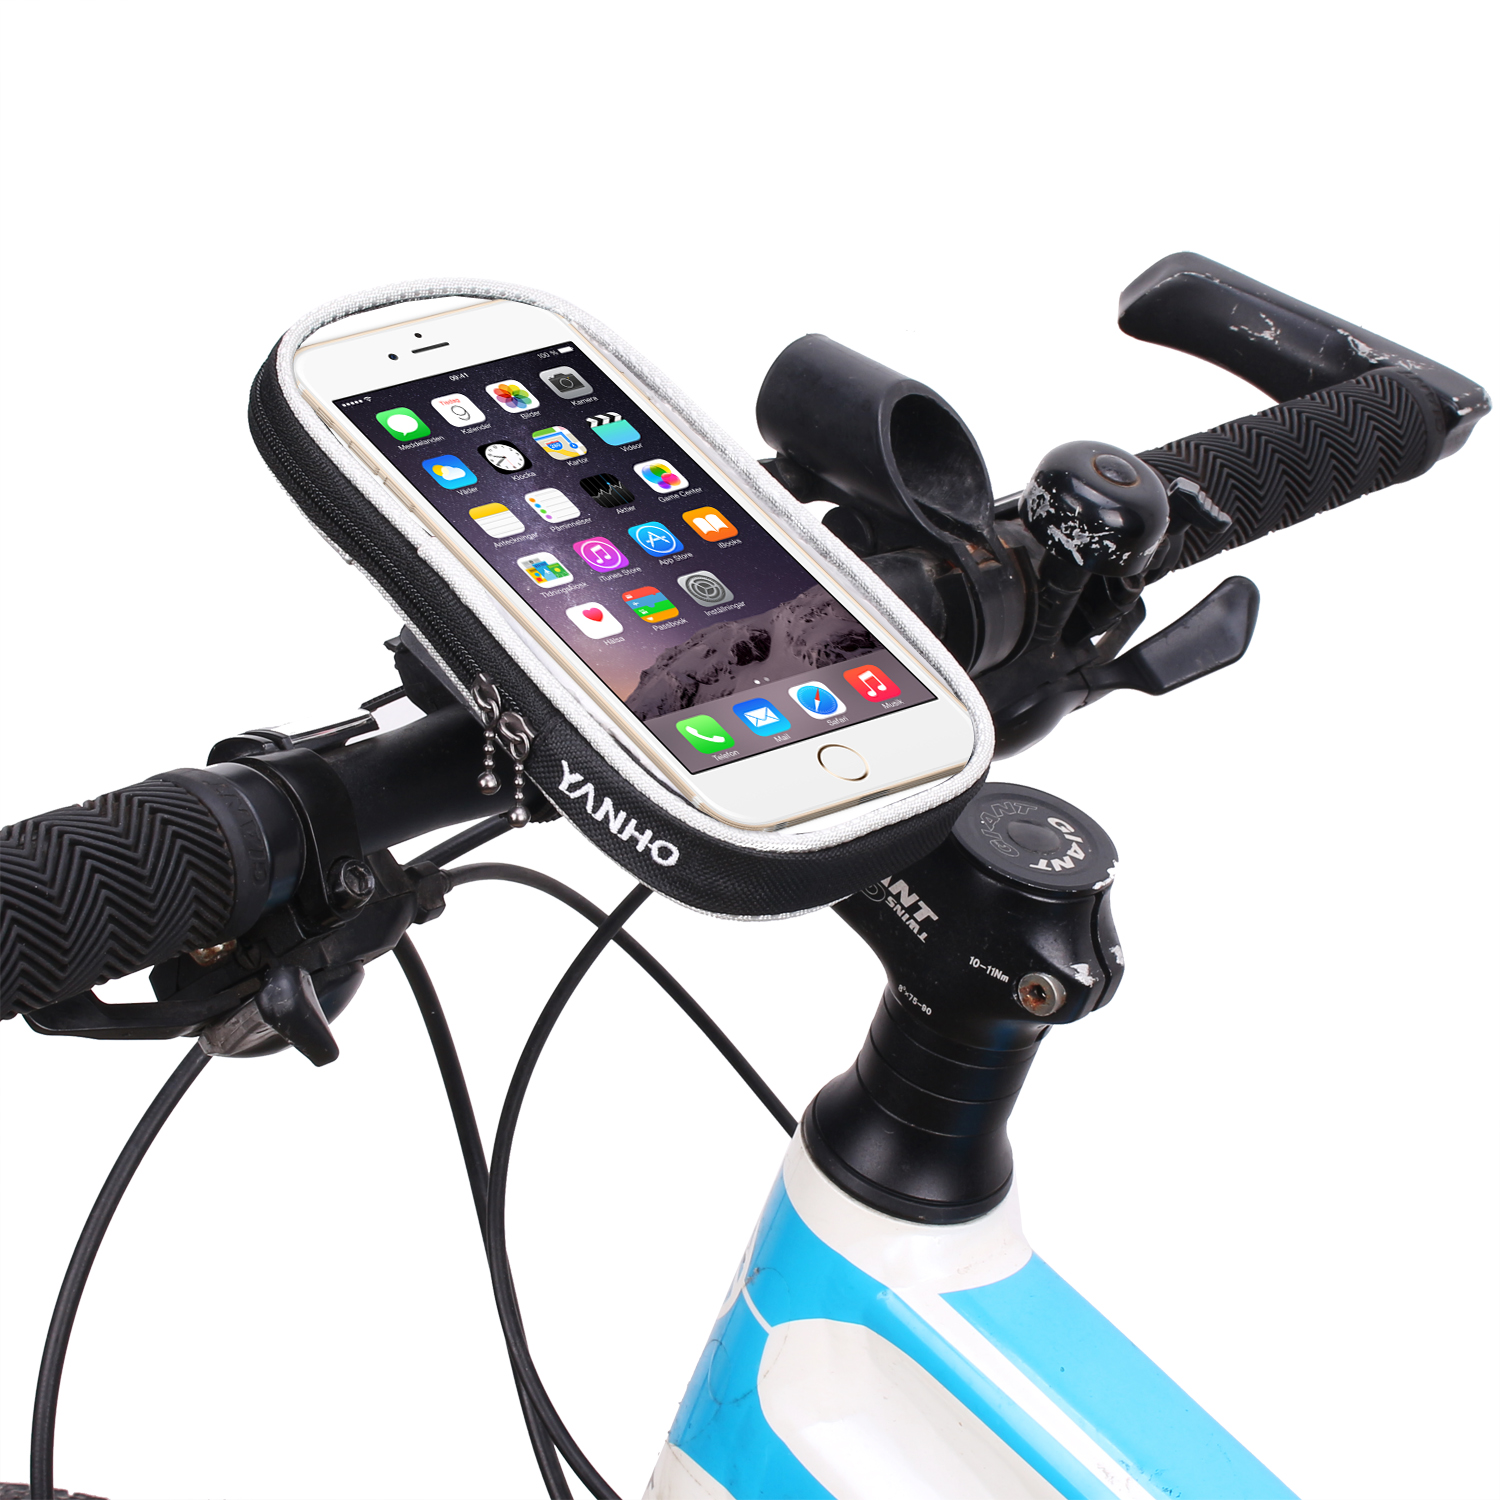 Cycling Bicycle <font><b>Bike</b></font> Protective Handlebar <font><b>Bag</b></font> Pouch Touch Screen Case For IPHONE6s 7 Samsung Navigation package Mobile Phone image